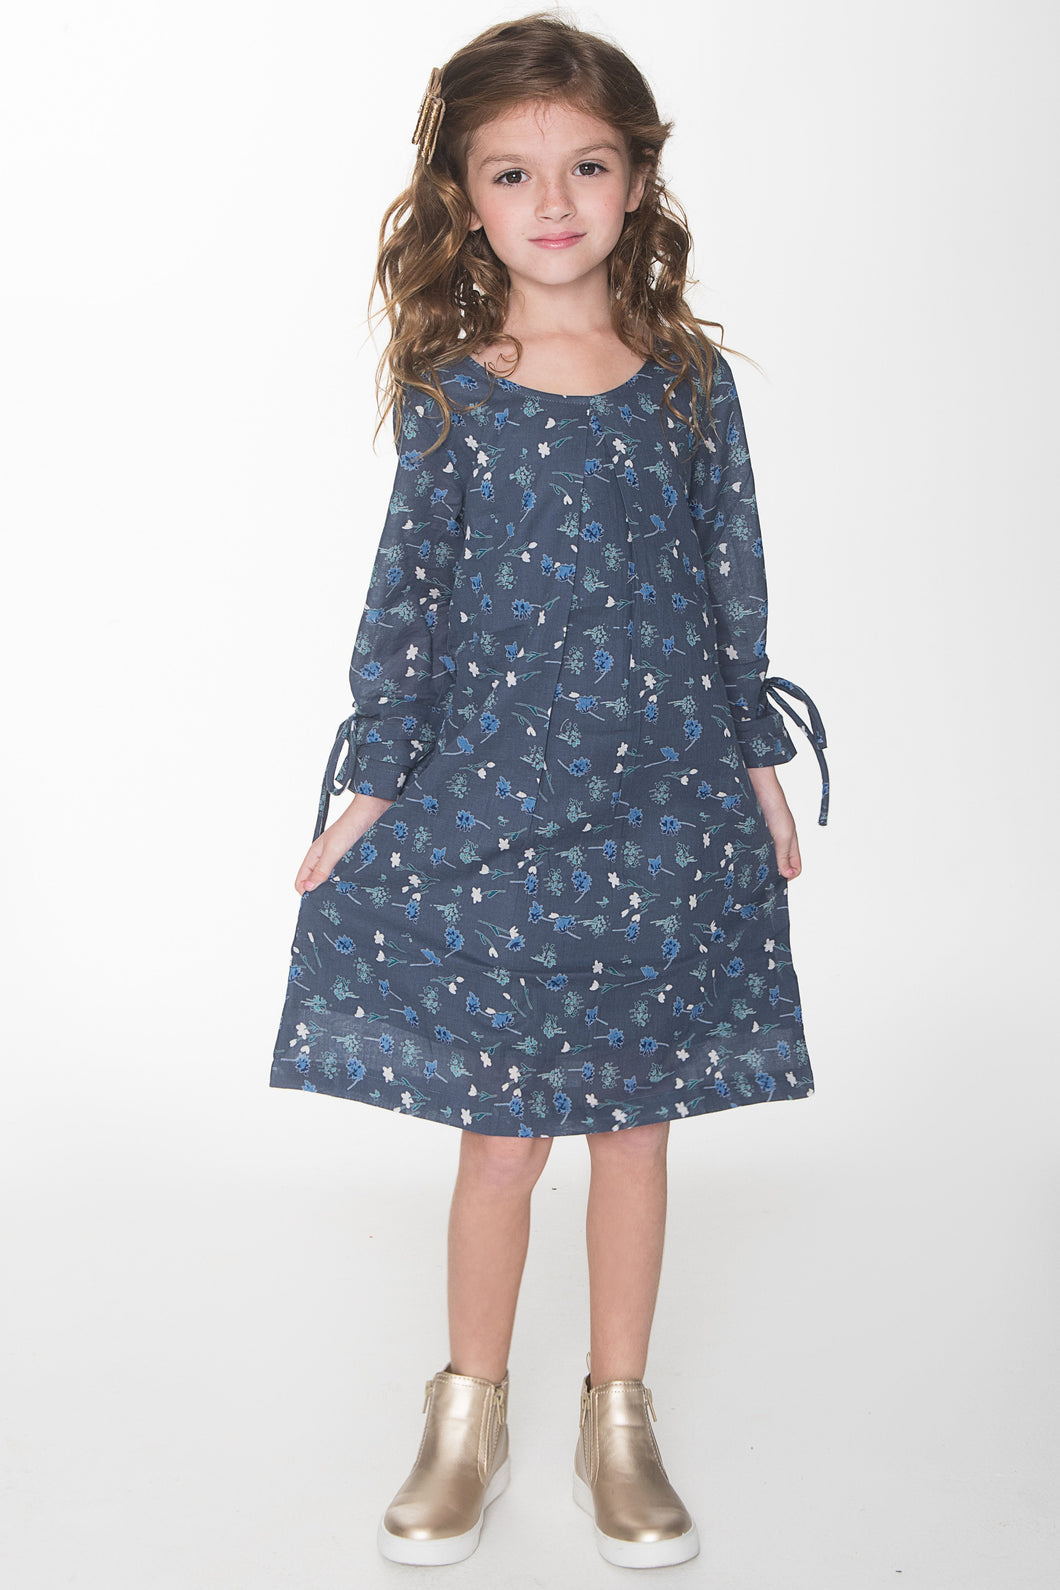 Blue Floral Shift Dress - Kids Clothing, Dress - Girls Dress, Yo Baby Online - Yo Baby